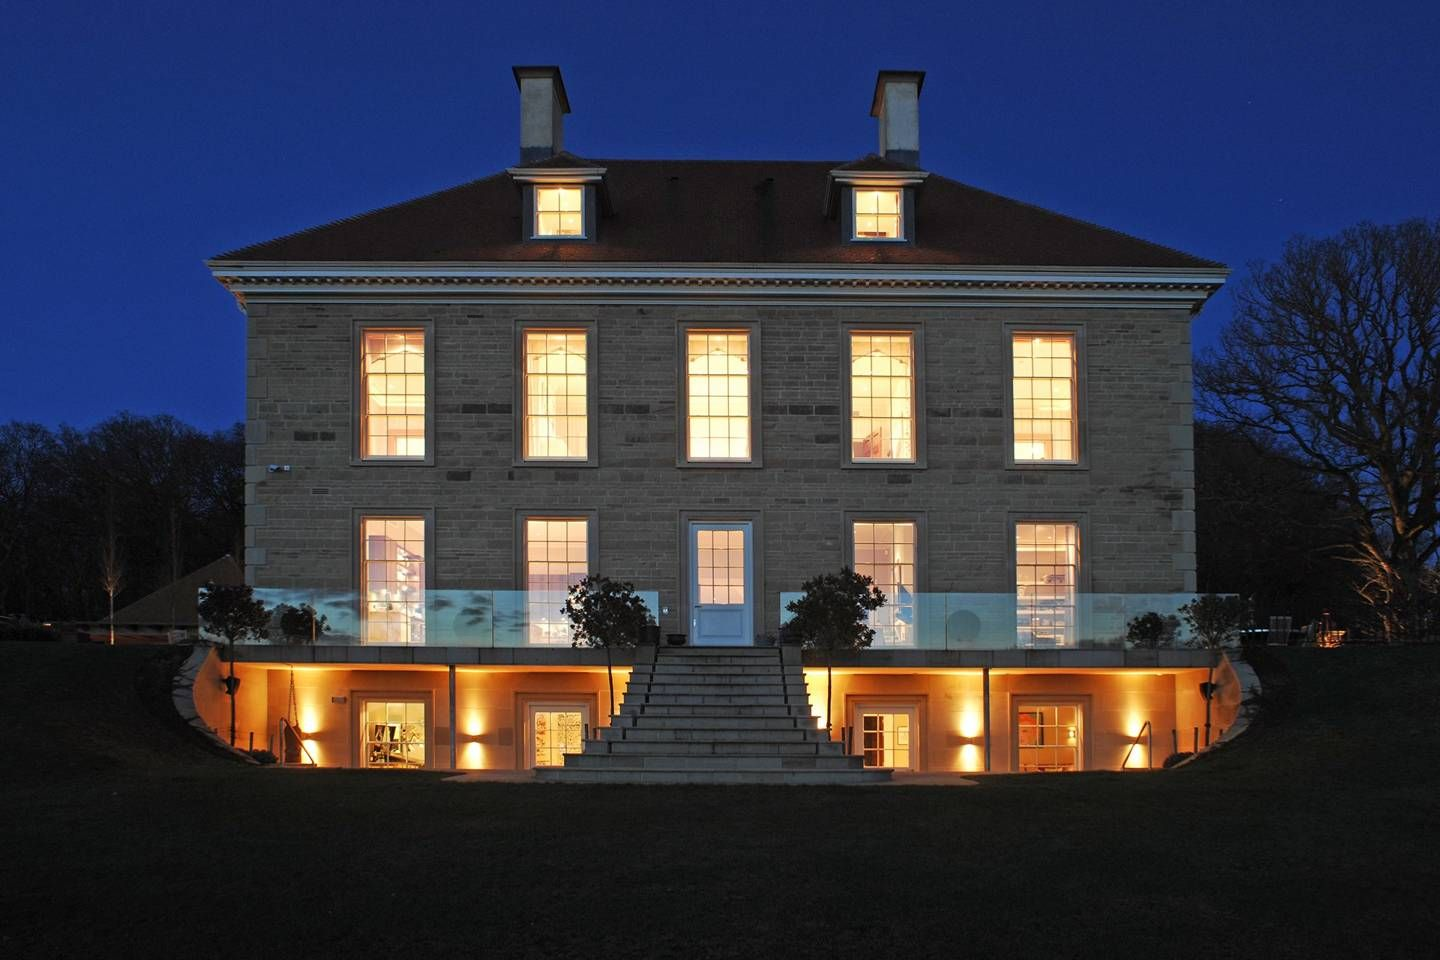 The Best Party Houses To Rent For Christmas Houses To Rent Over Christmas Country Houses To Rent For New Y Renting A House House Party English Manor Houses